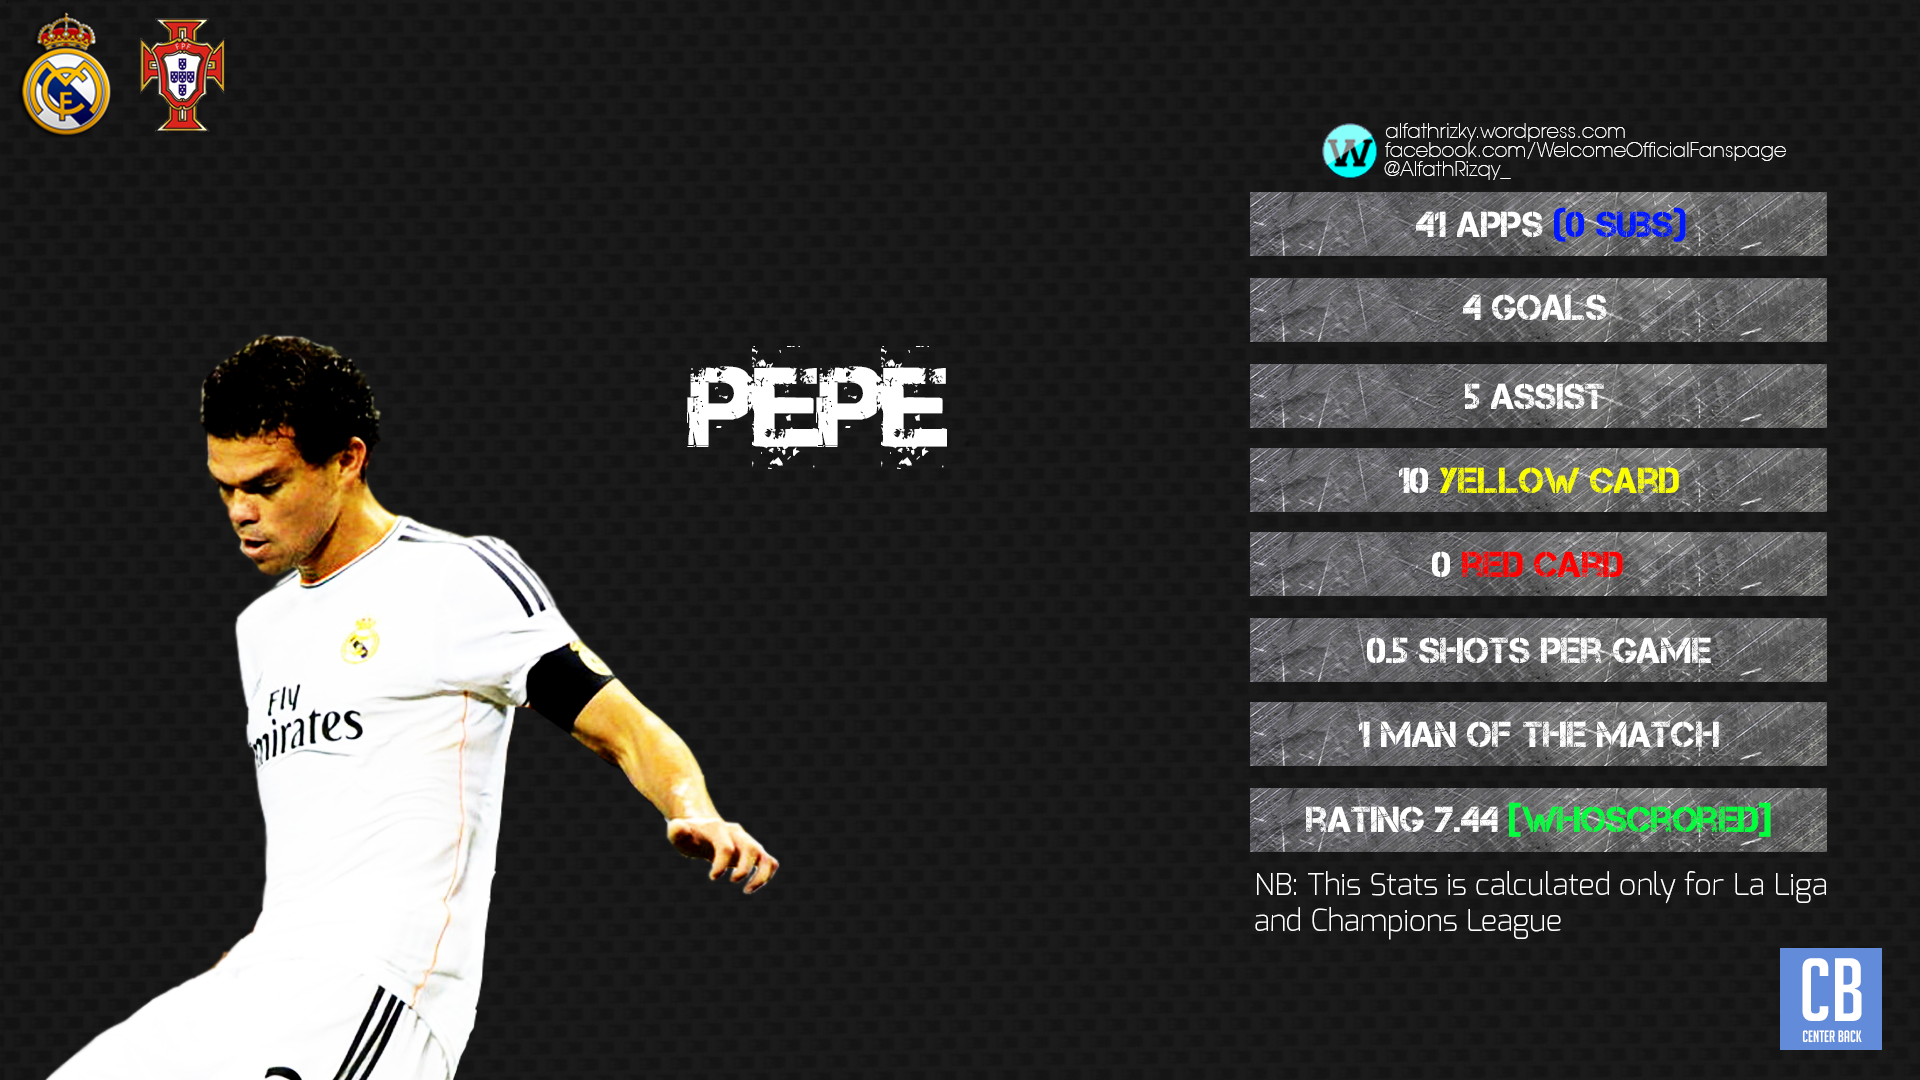 Pepe Wallpaper v2 1920x1080